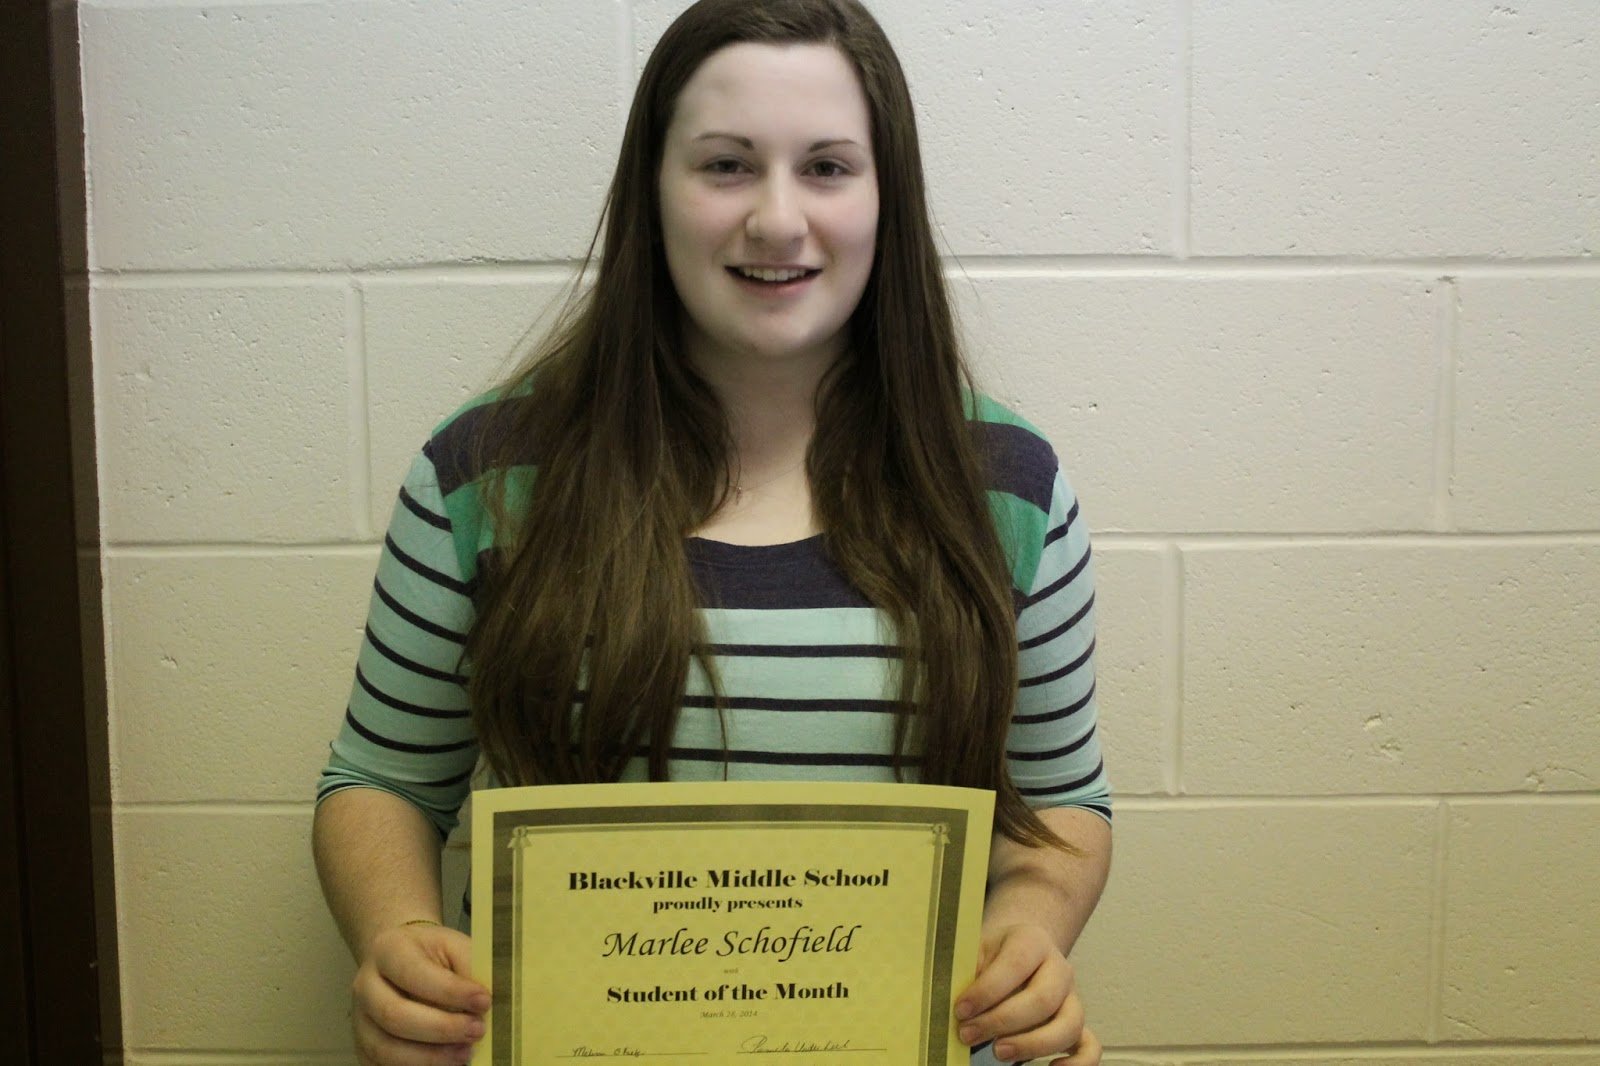 Cleaning ladies mrs overall on the graham norton show this week and - Student Of The Month For Mrs O Keefe S Homeroom Class Is Marlee Schofield Marlee Is Hard Working Especially Kind And Helpful Thoughtful Shows